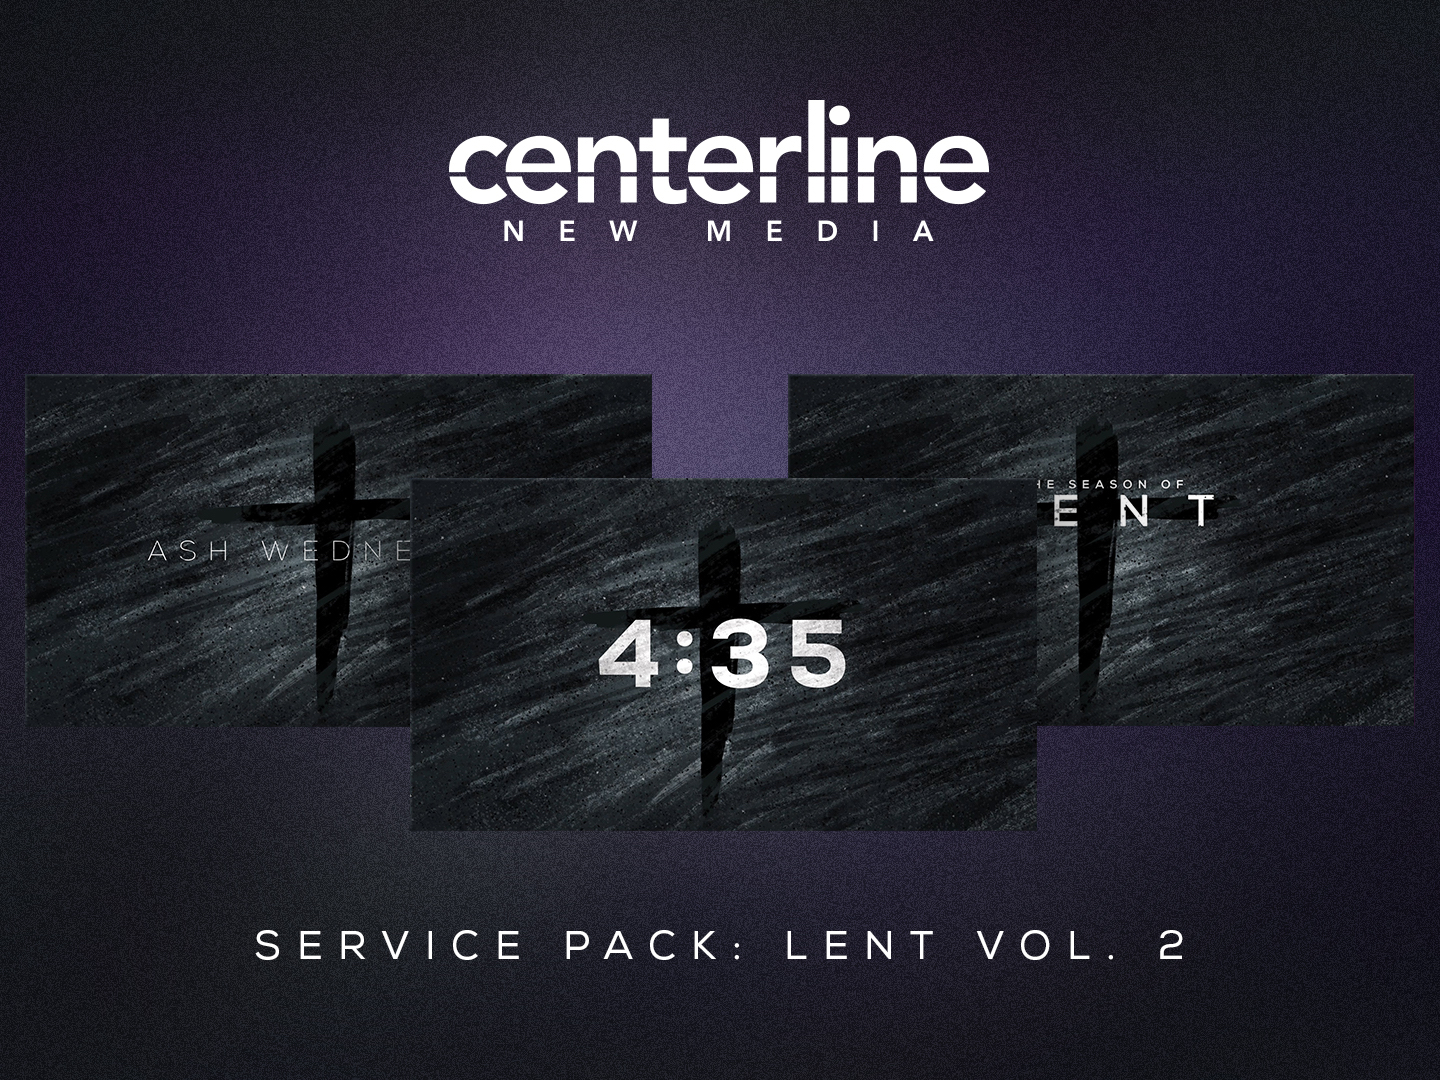 SERVICE PACK: LENT VOL 2